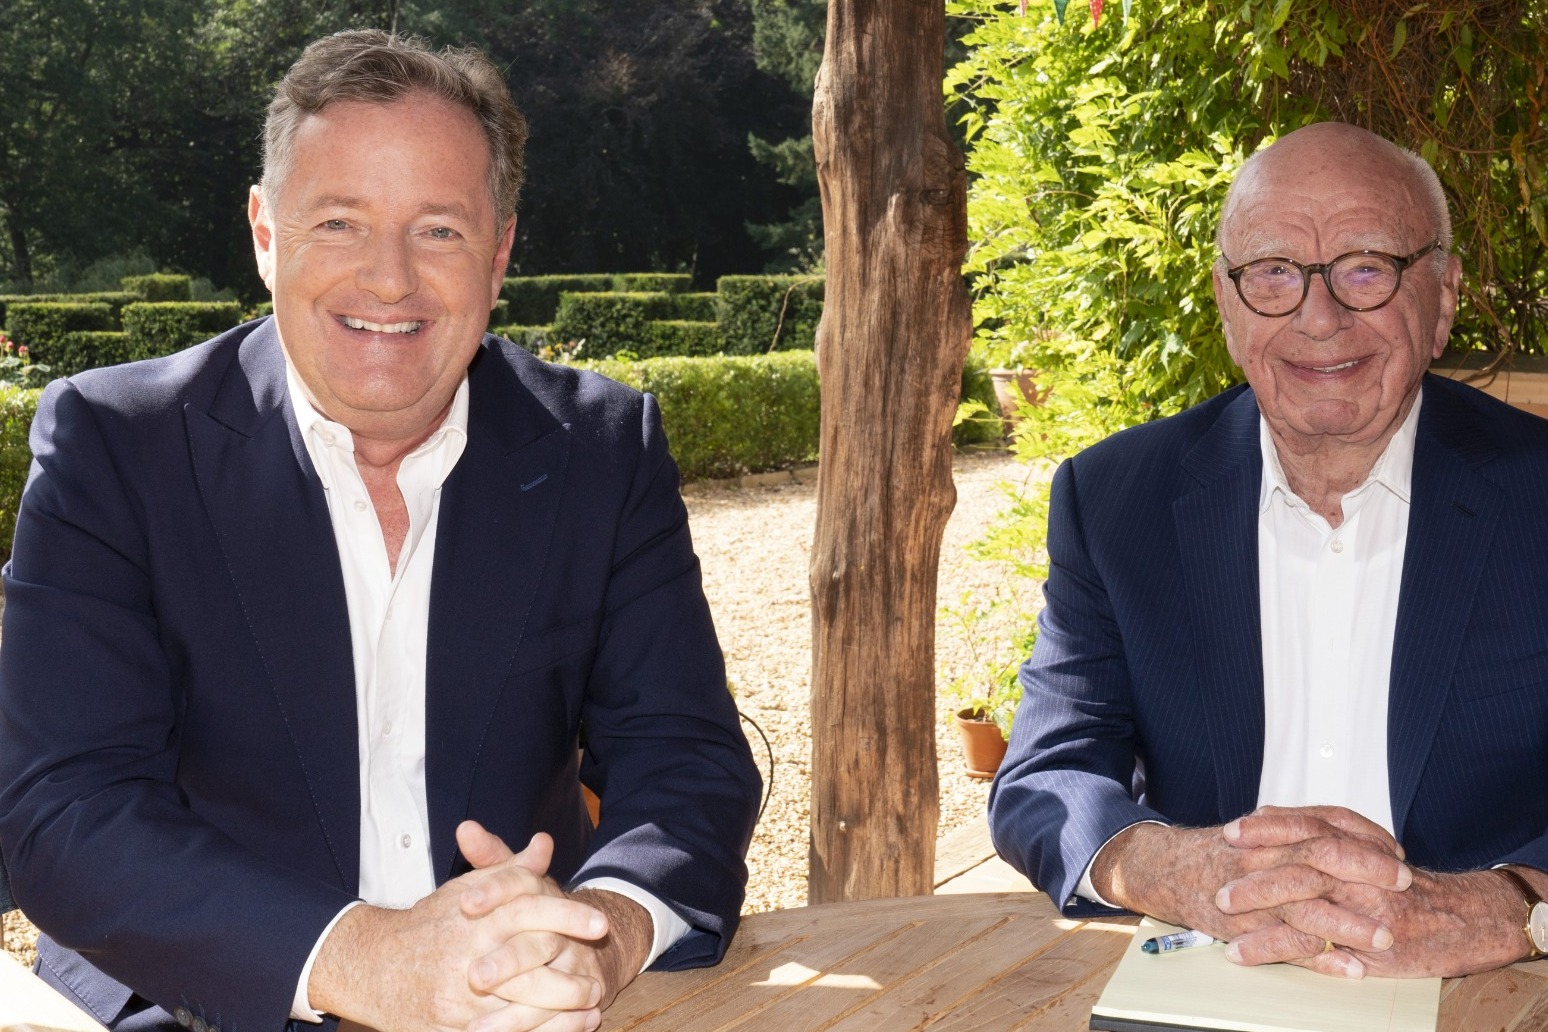 Piers Morgan signs global deal with News Corp and Fox News Media